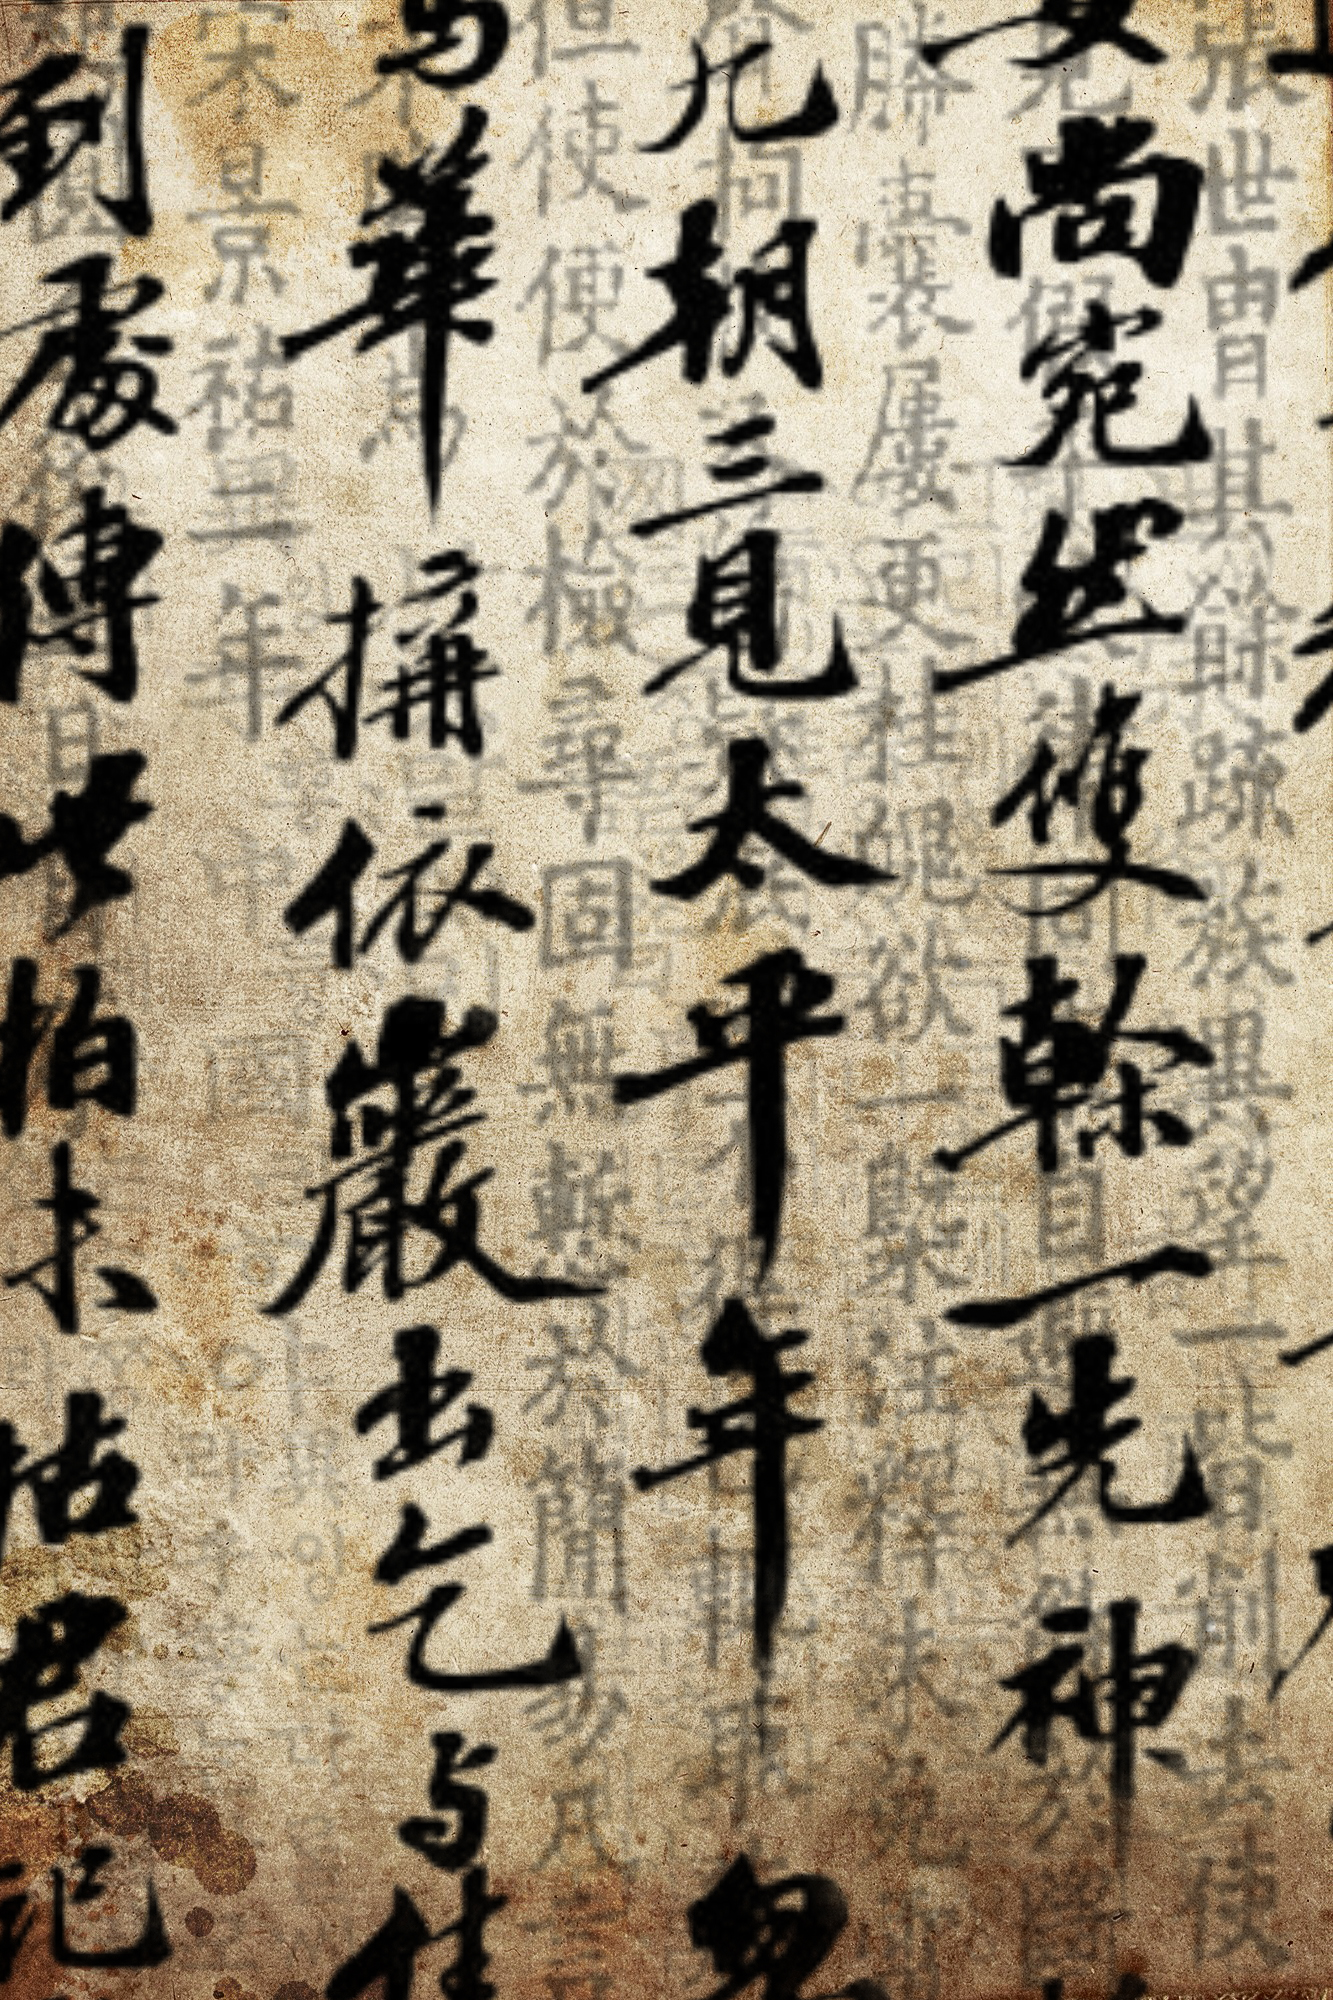 Chinese Calligraphy By Dncube On Deviantart